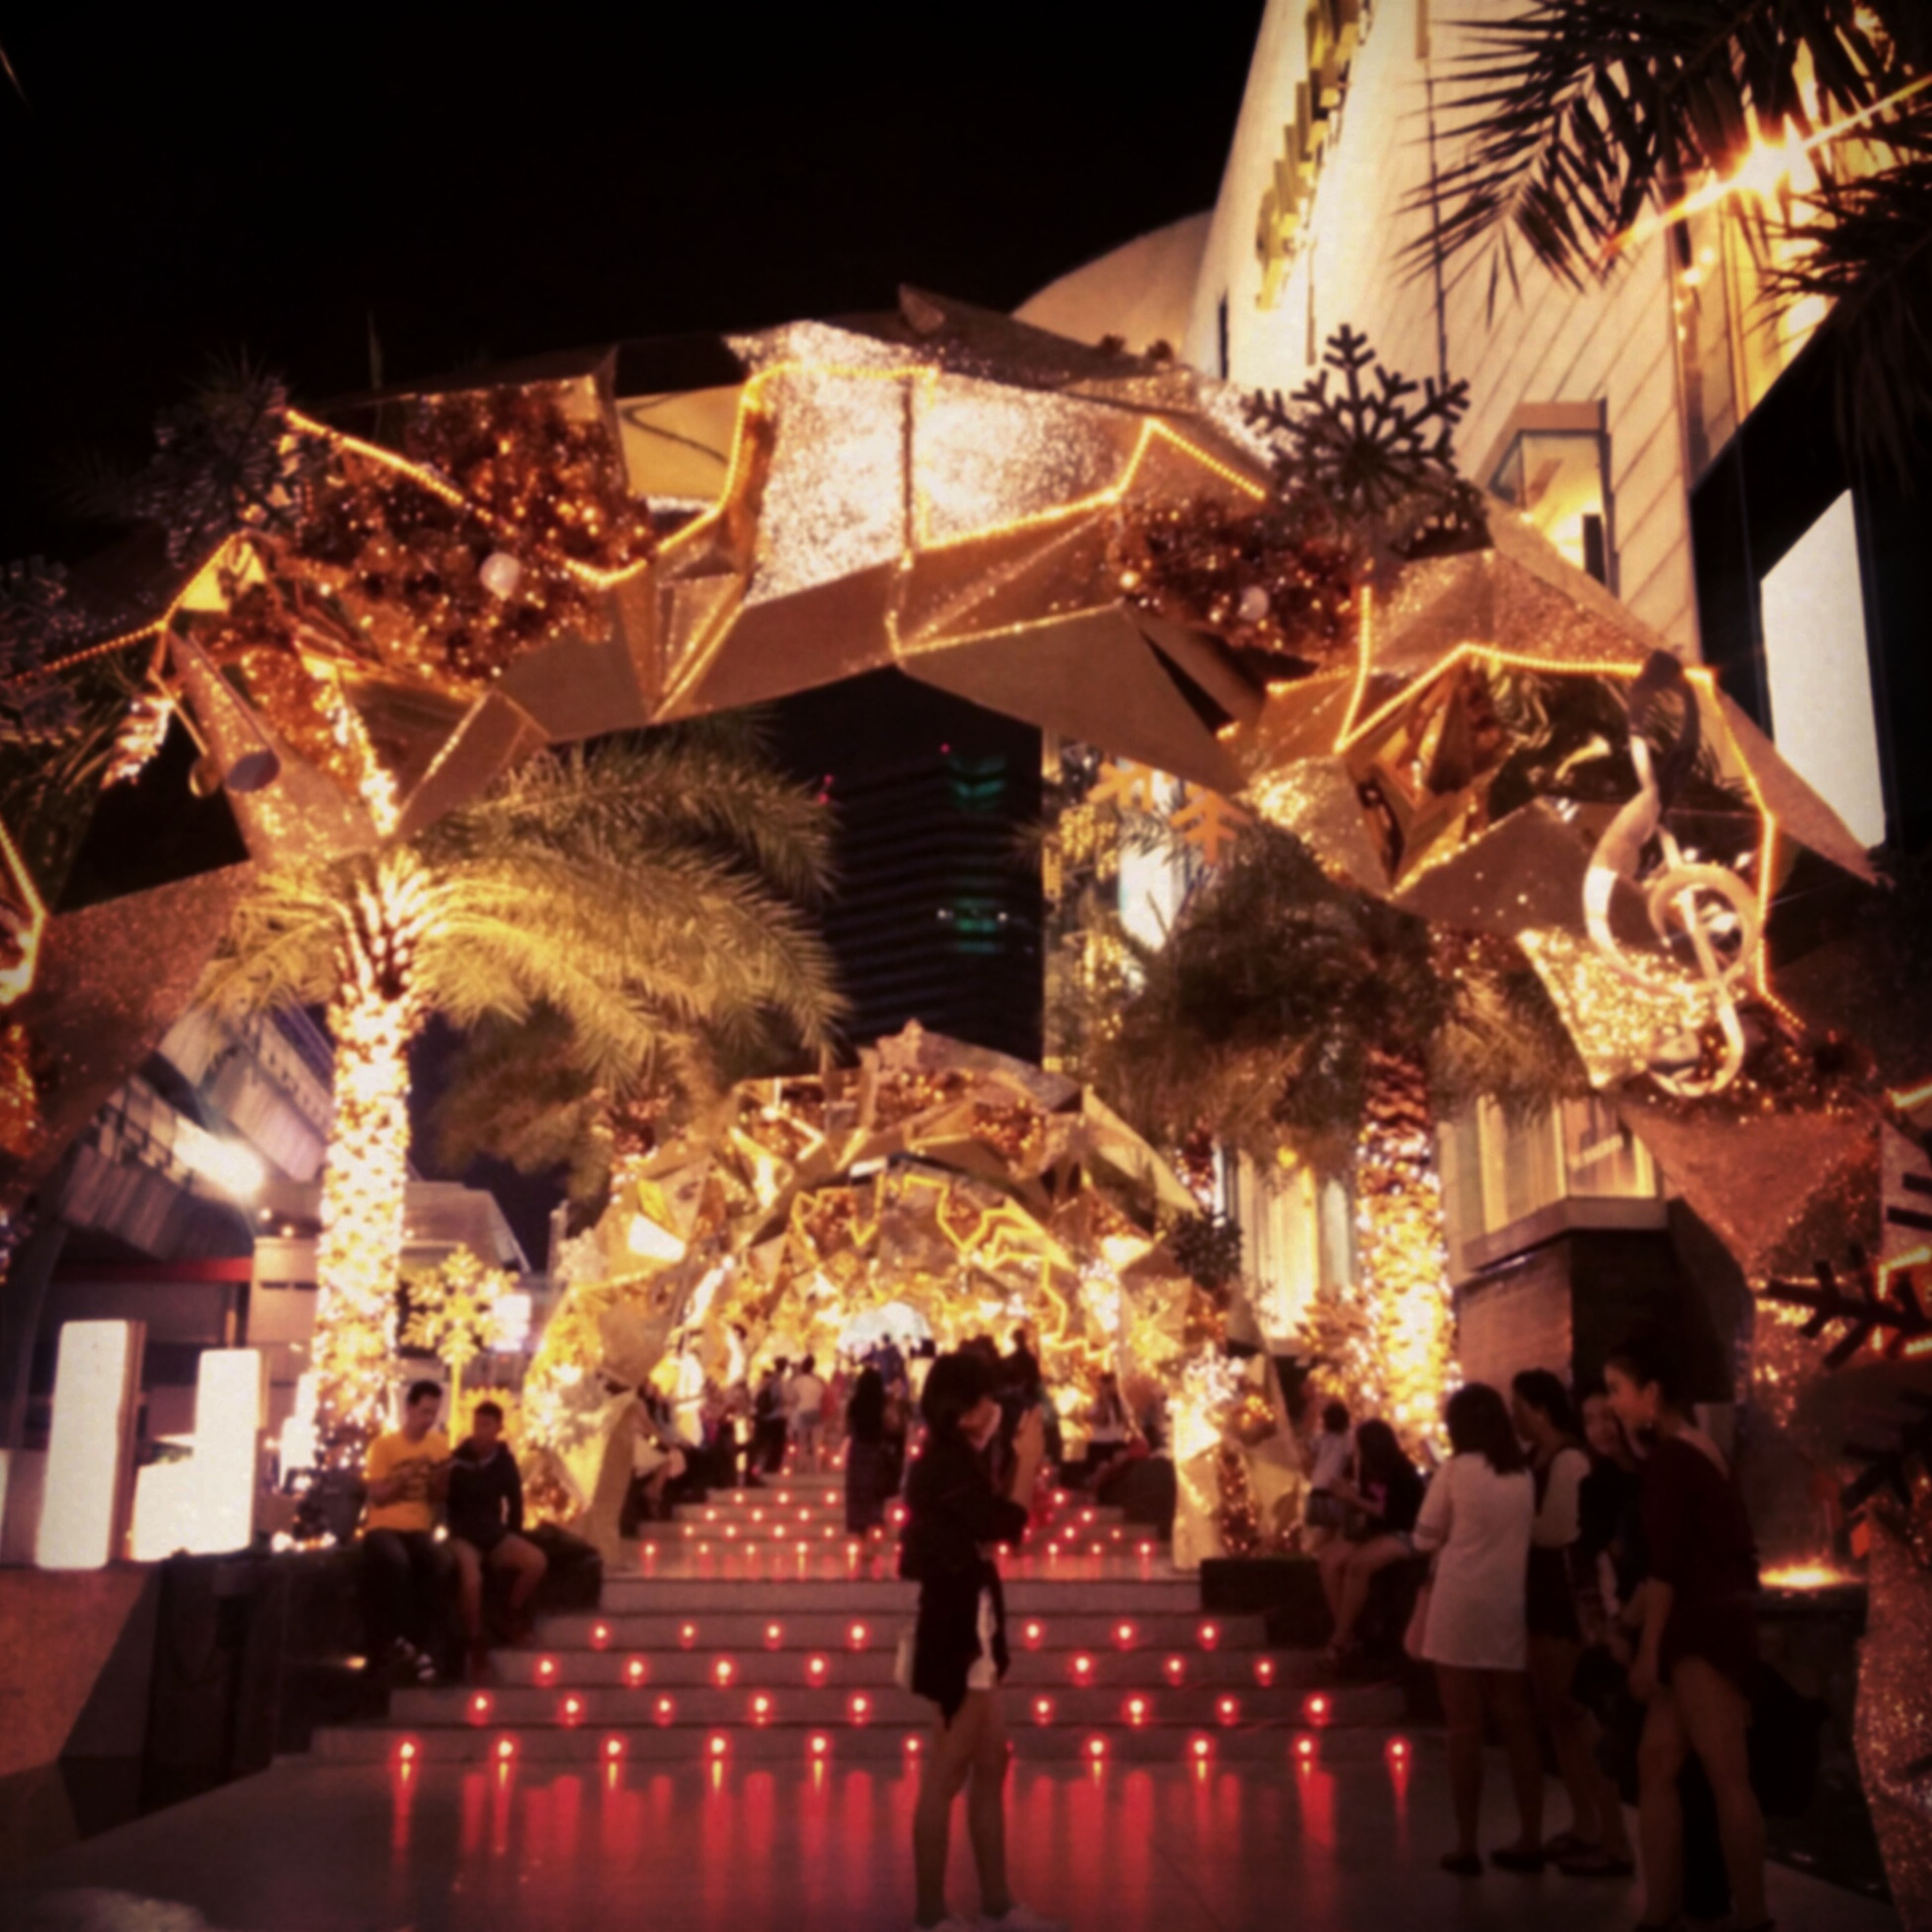 illuminated, night, celebration, built structure, men, lighting equipment, architecture, arts culture and entertainment, building exterior, lifestyles, leisure activity, person, decoration, low angle view, event, indoors, tradition, hanging, light - natural phenomenon